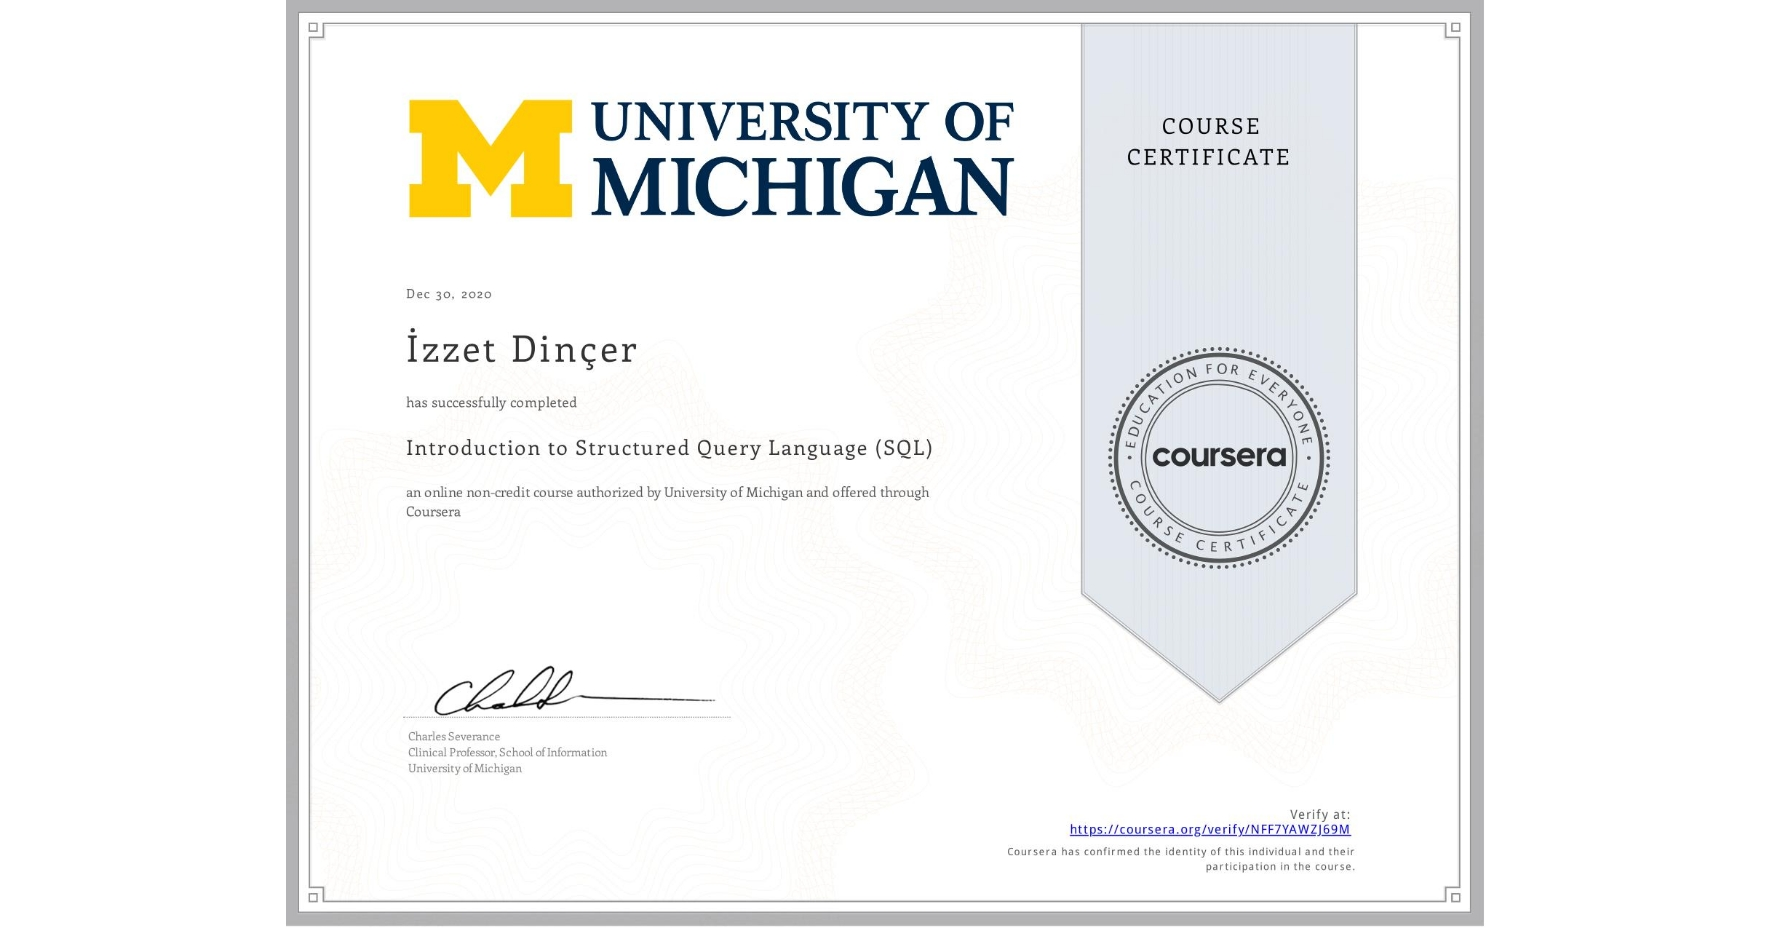 View certificate for İzzet Dinçer, Introduction to Structured Query Language (SQL), an online non-credit course authorized by University of Michigan and offered through Coursera